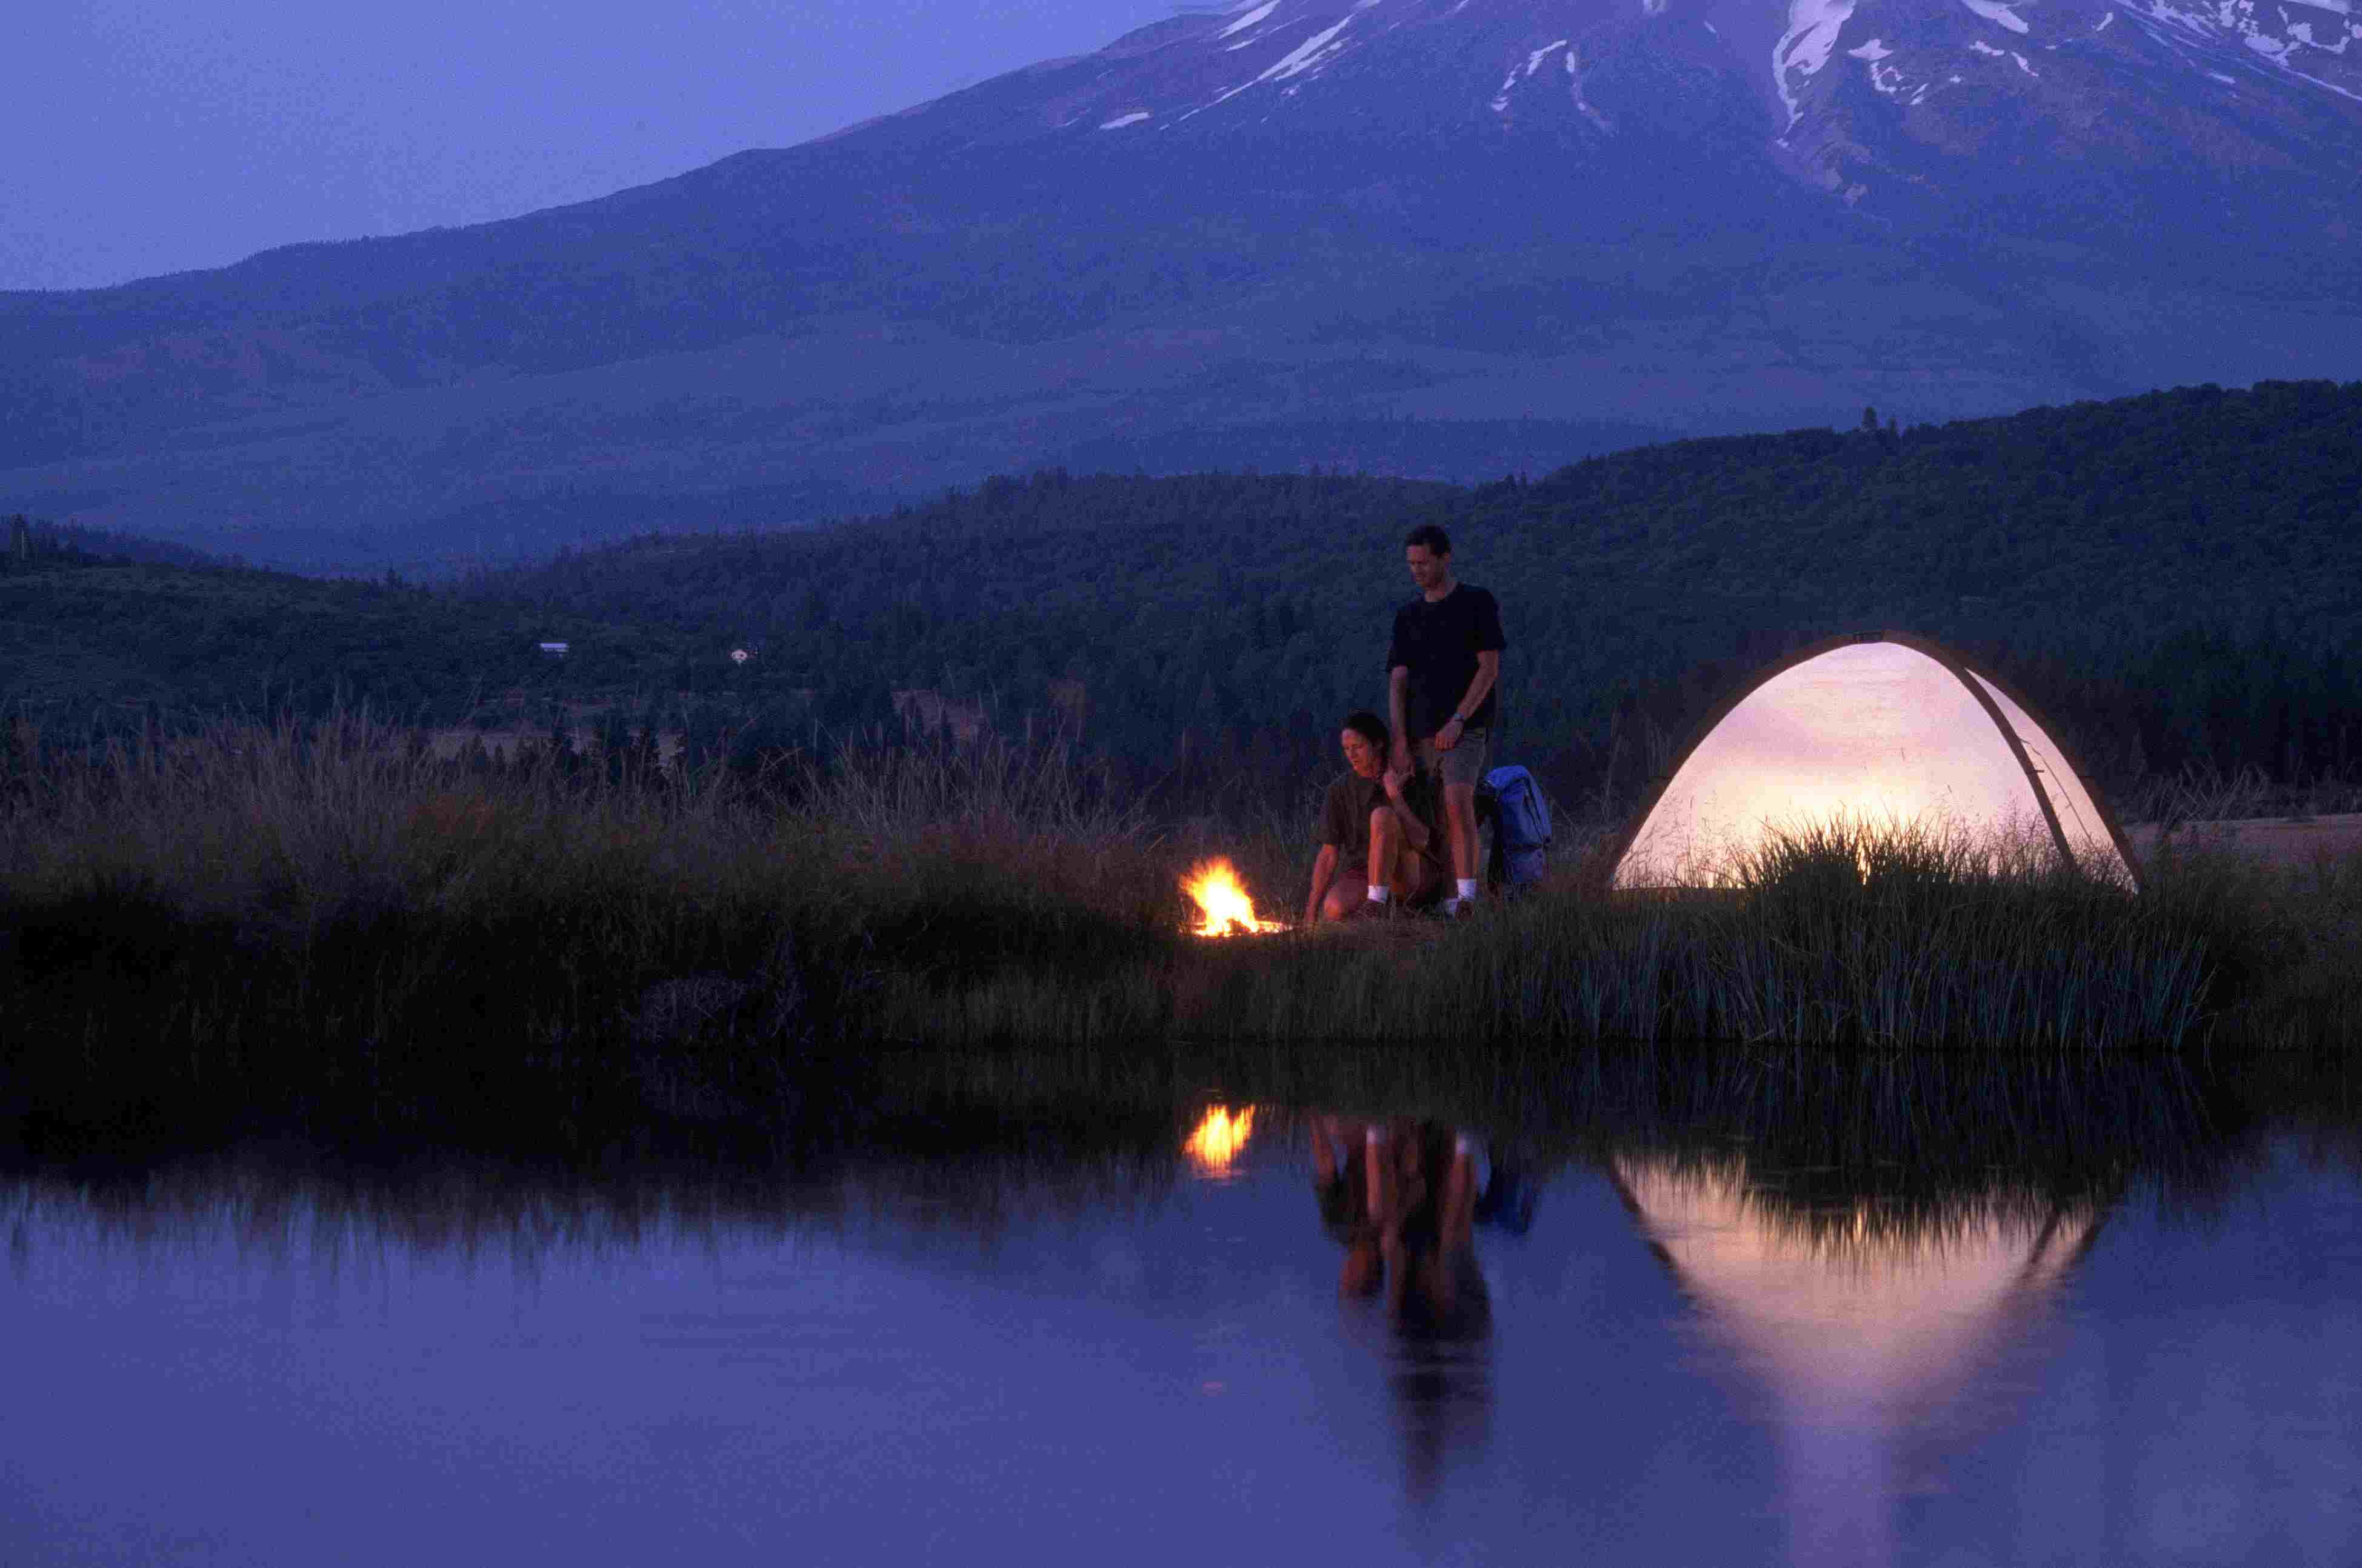 shasta camping - what you need to know